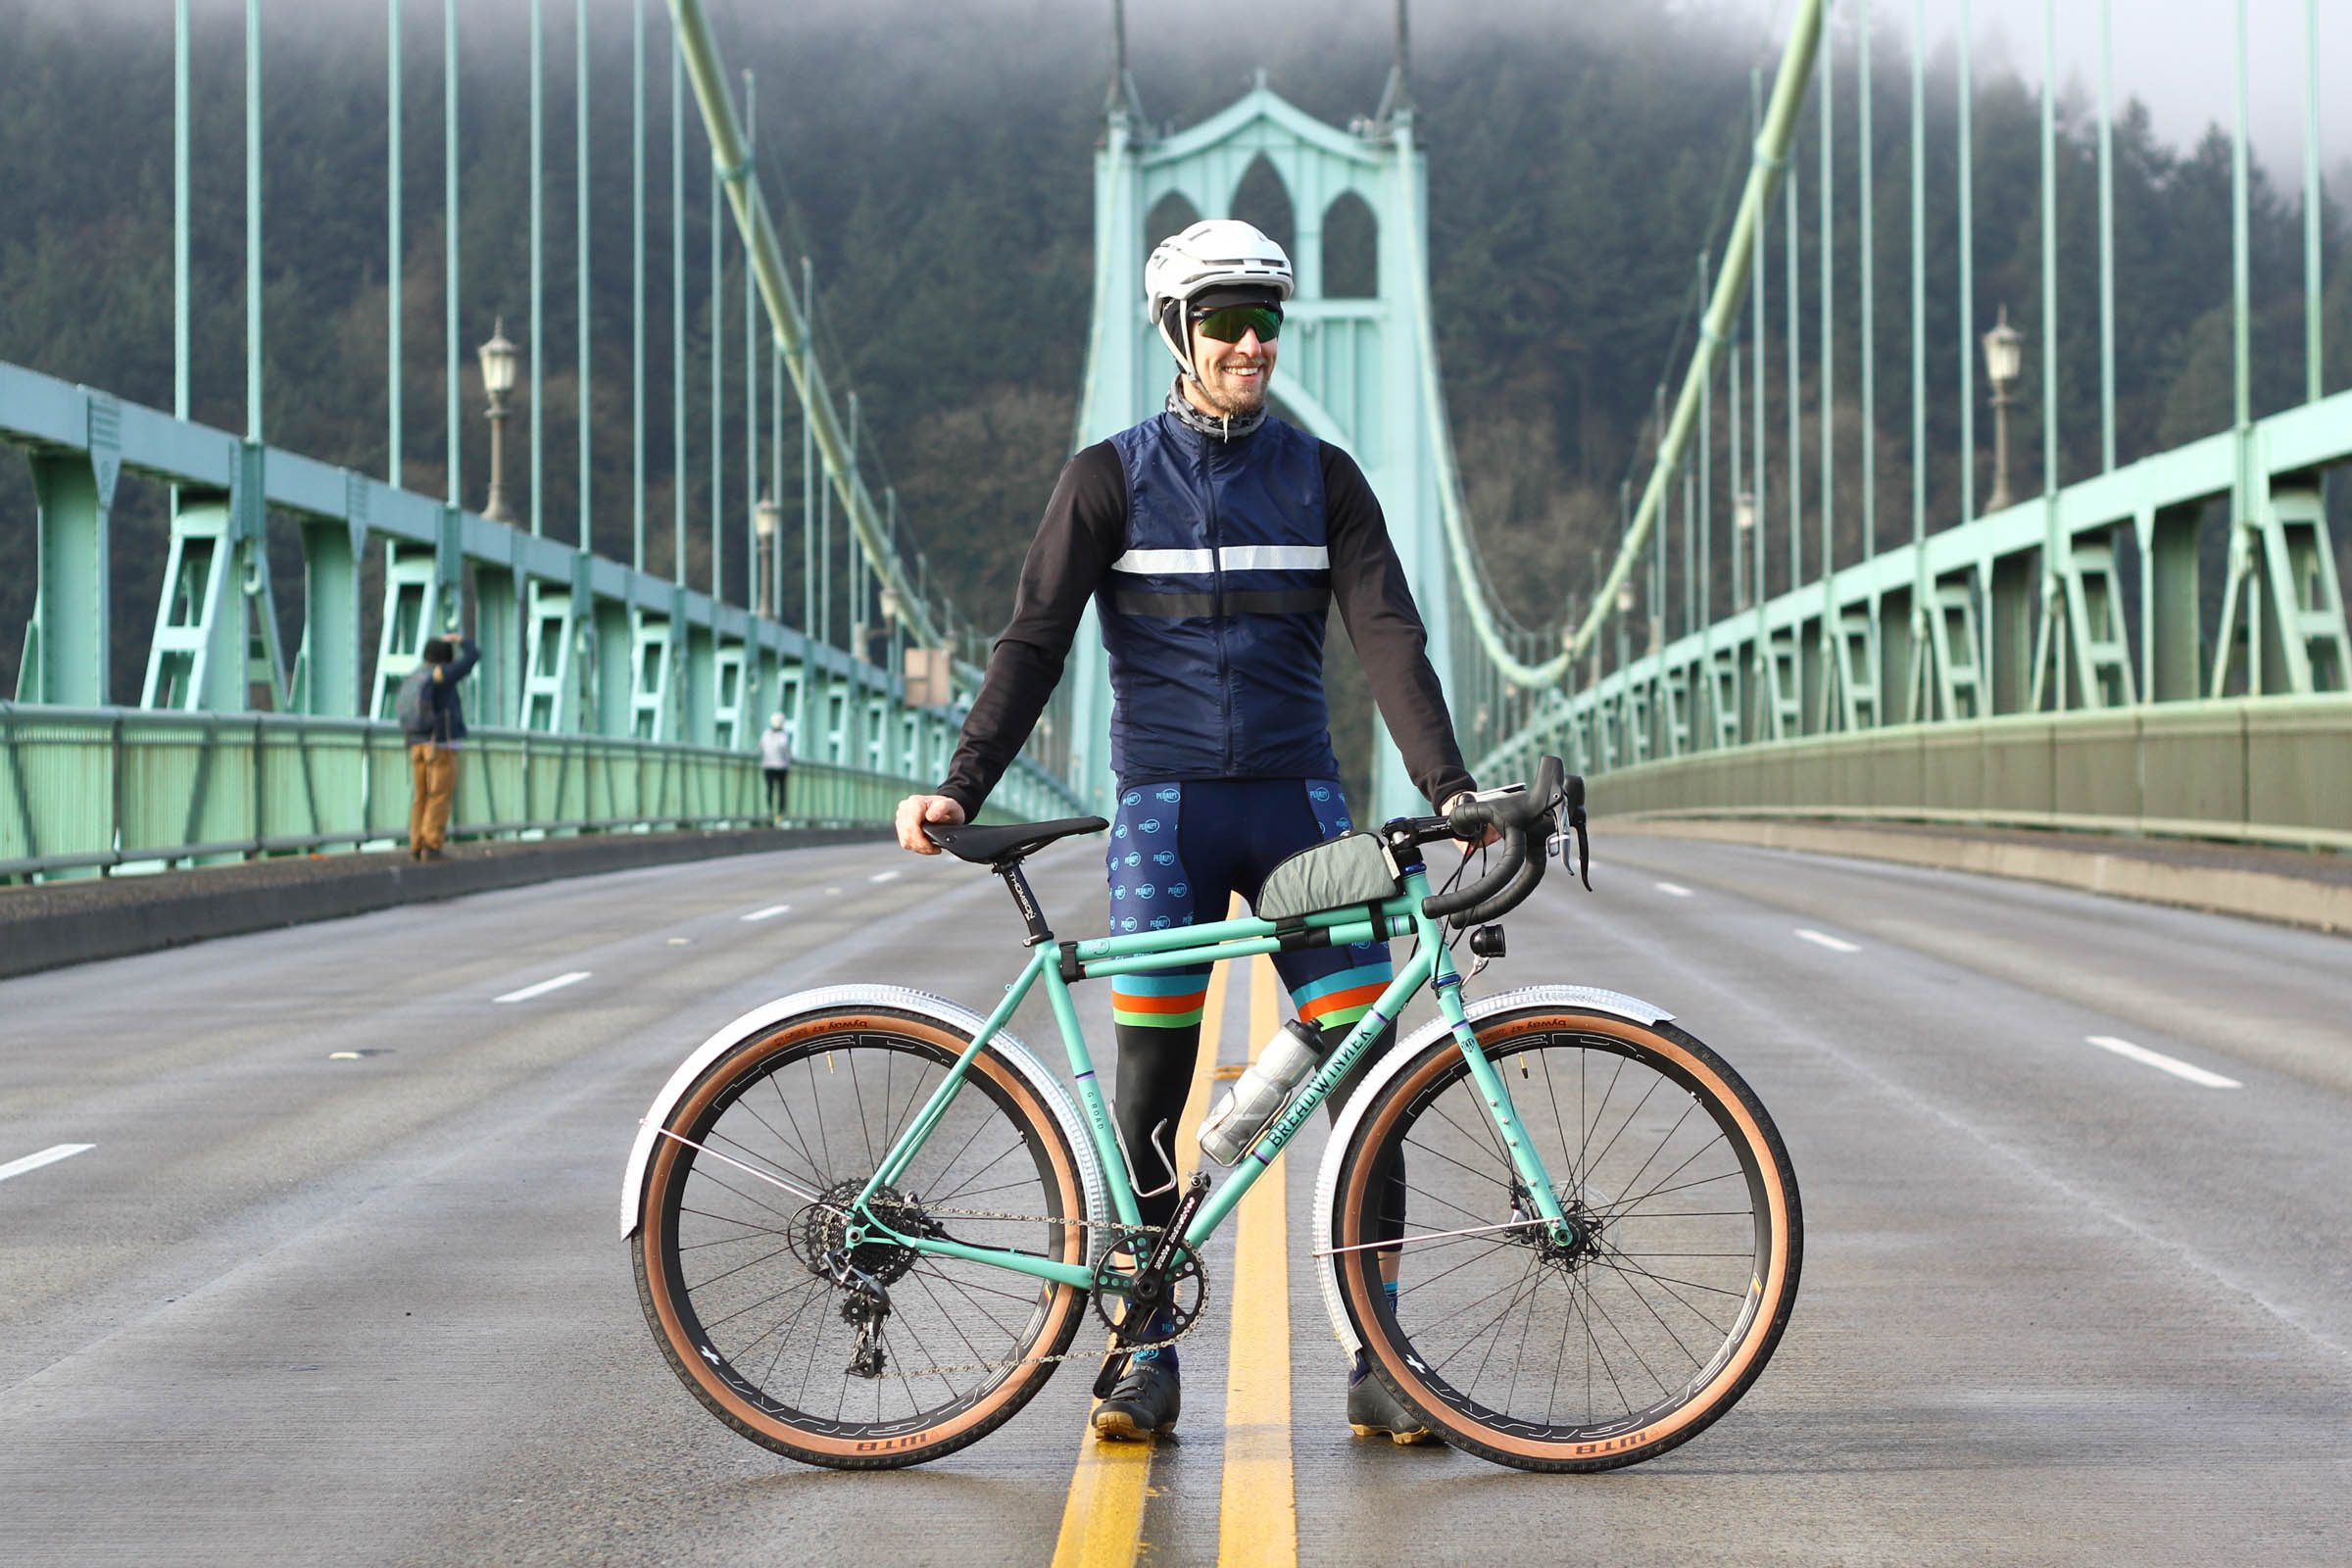 breadwinner_cycles_custom_steel_bikes_portland_oregon_G-Road_gravel_bike-10